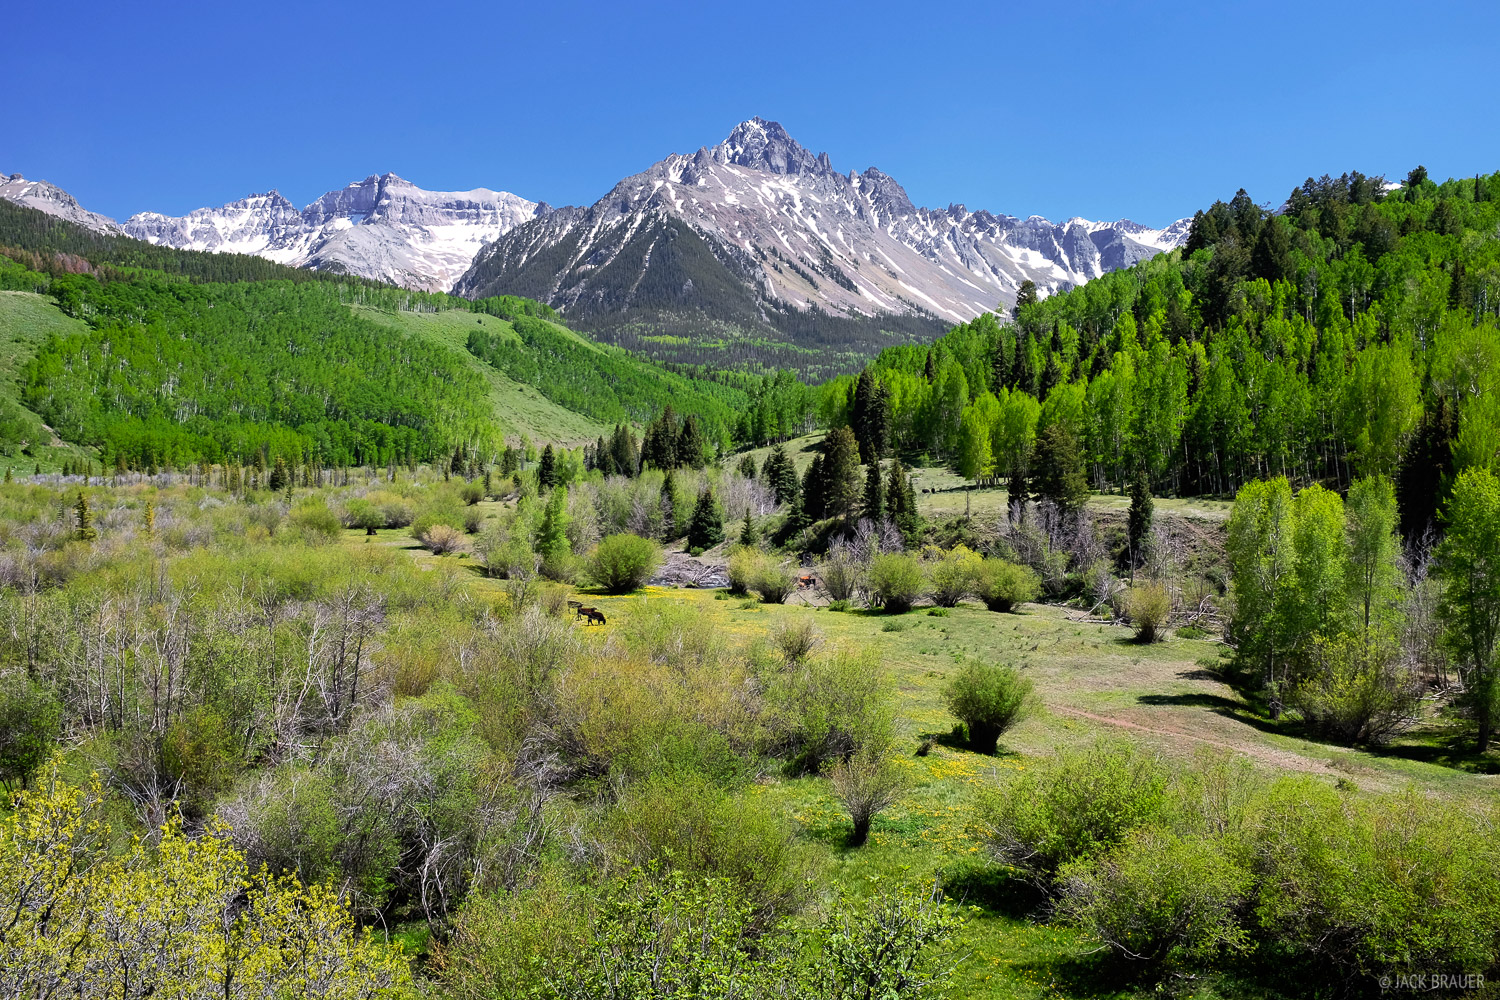 Mt. Sneffels, San Juan Mountains, spring, June, green, CR7, photo